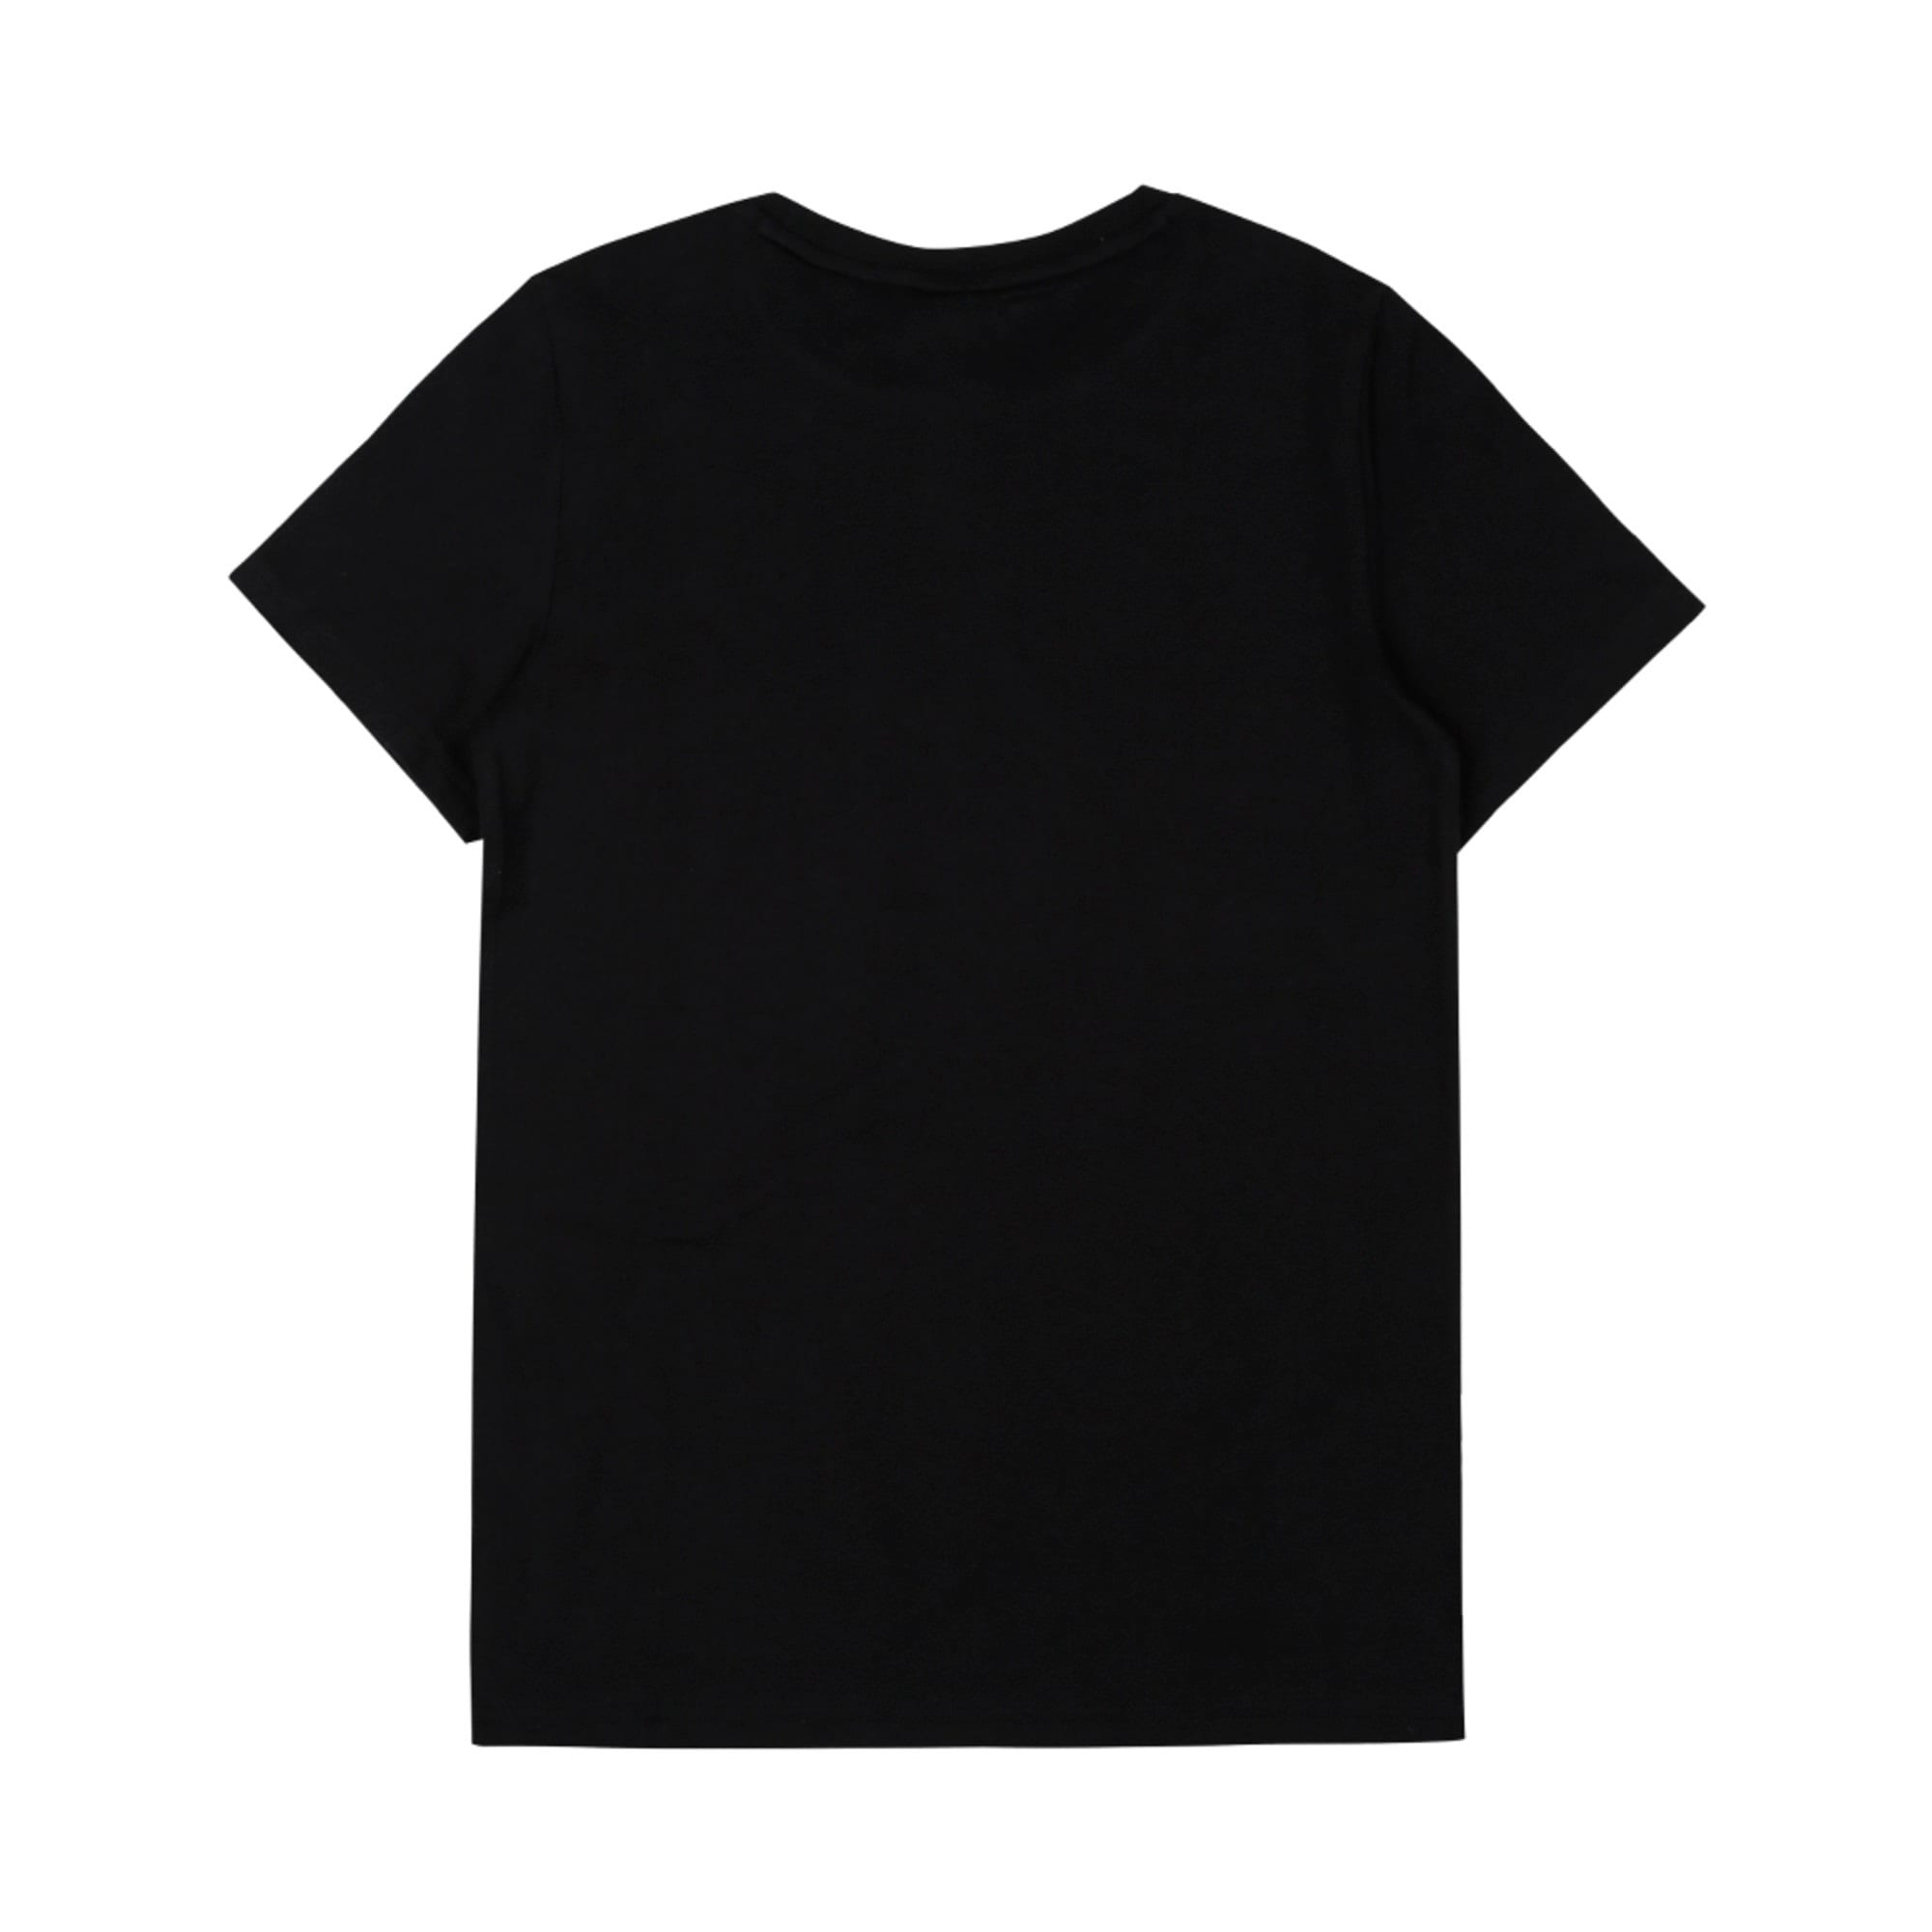 Thumbnail 3 of Style Graphic Tee, Cotton Black, medium-IND